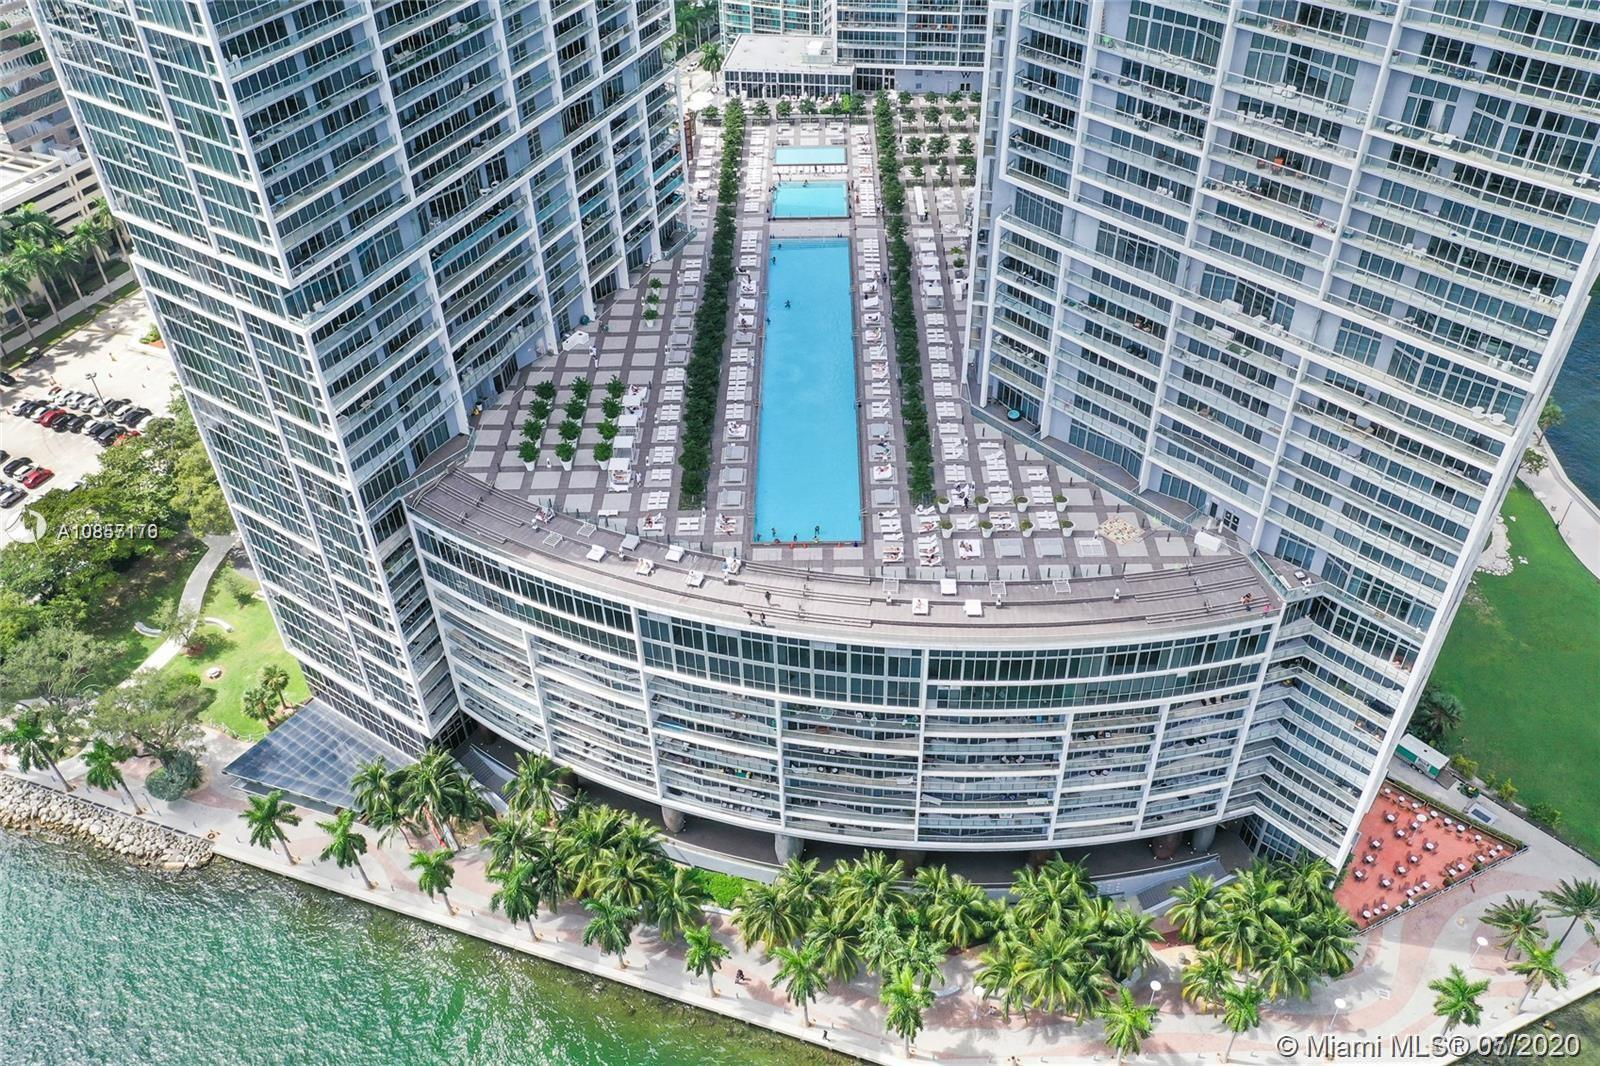 Icon Brickell 1 #504 - 465 BRICKELL AVE #504, Miami, FL 33131